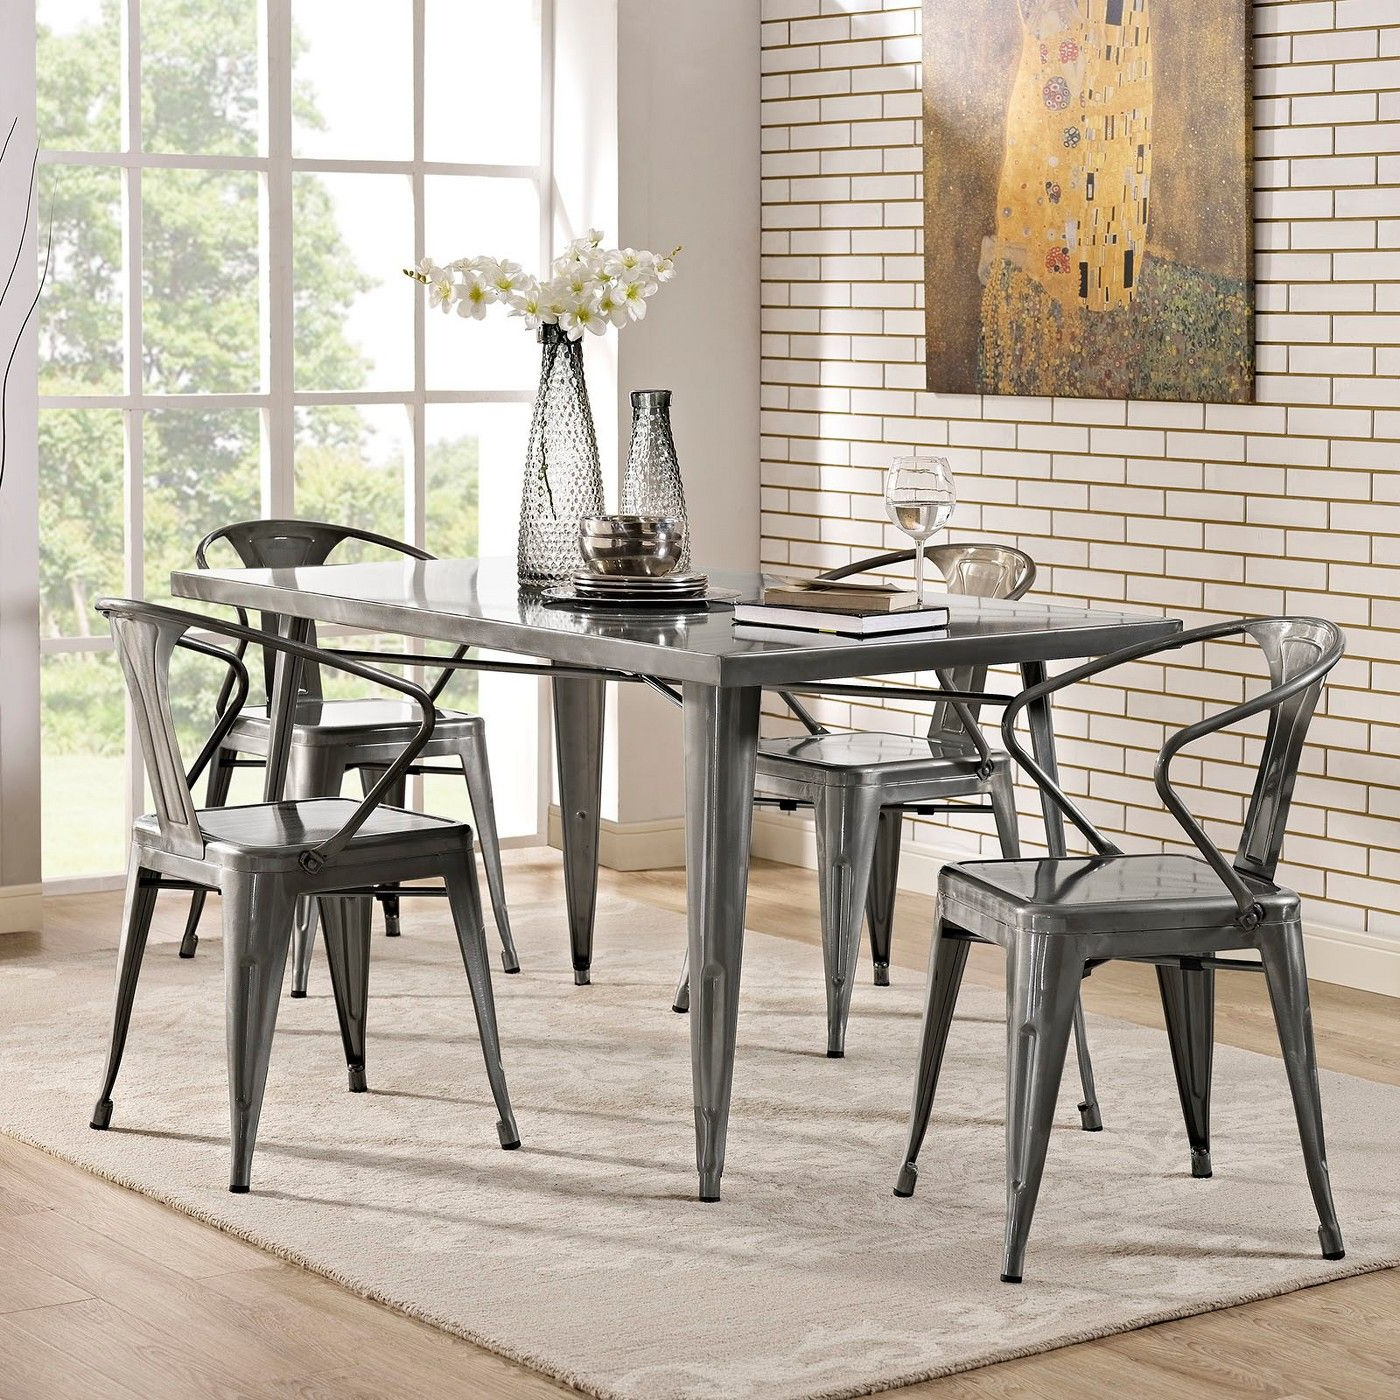 Alacrity Rectangle Metal Dining Table Gunmetal – Modway, Silver Throughout Newest Middleport 5 Piece Dining Sets (View 1 of 25)